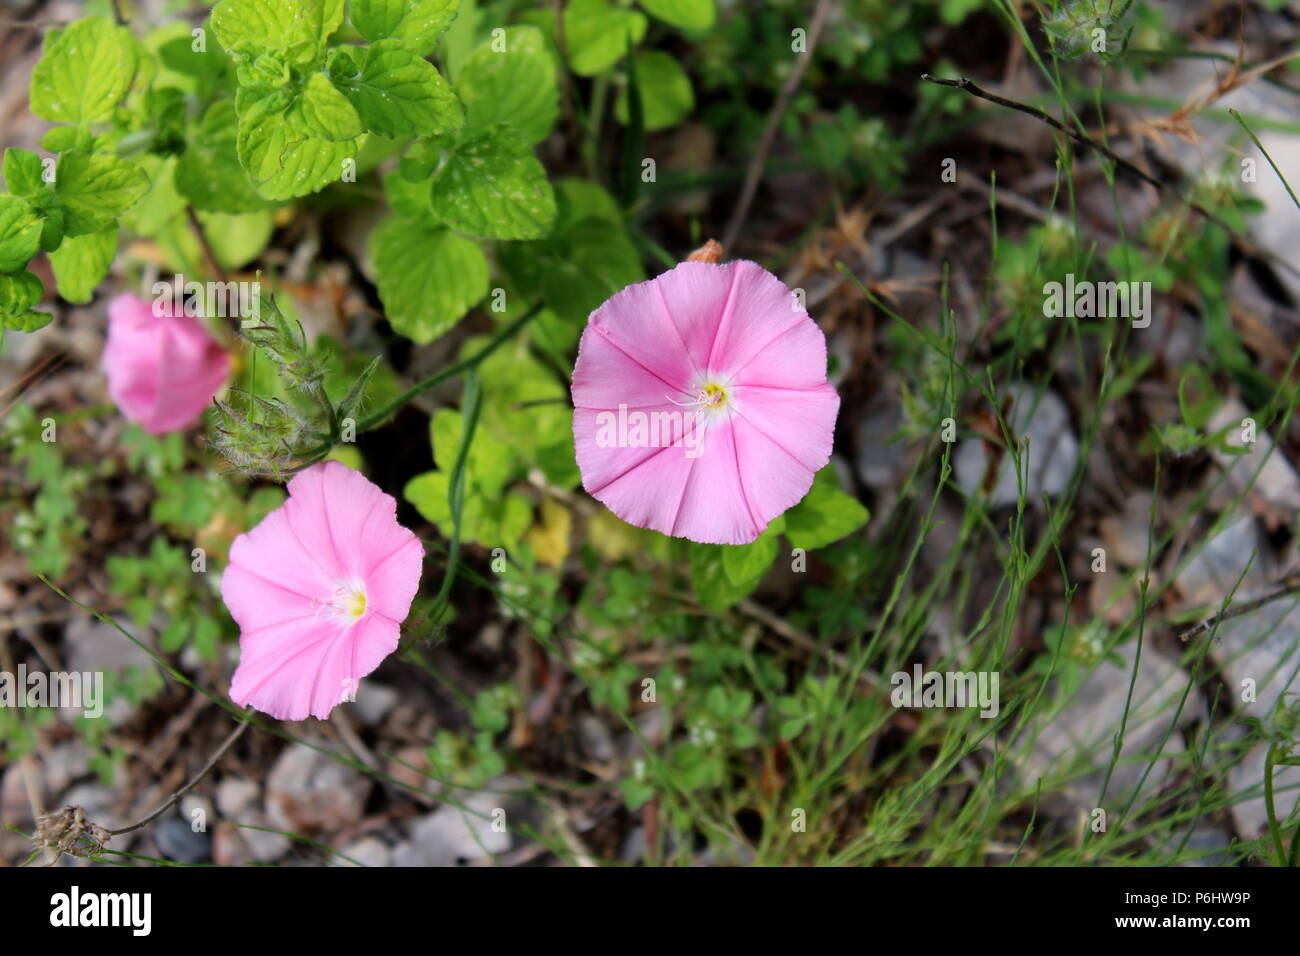 Field Bindweed Or Convolvulus Arvensis Pink Flowers With Green